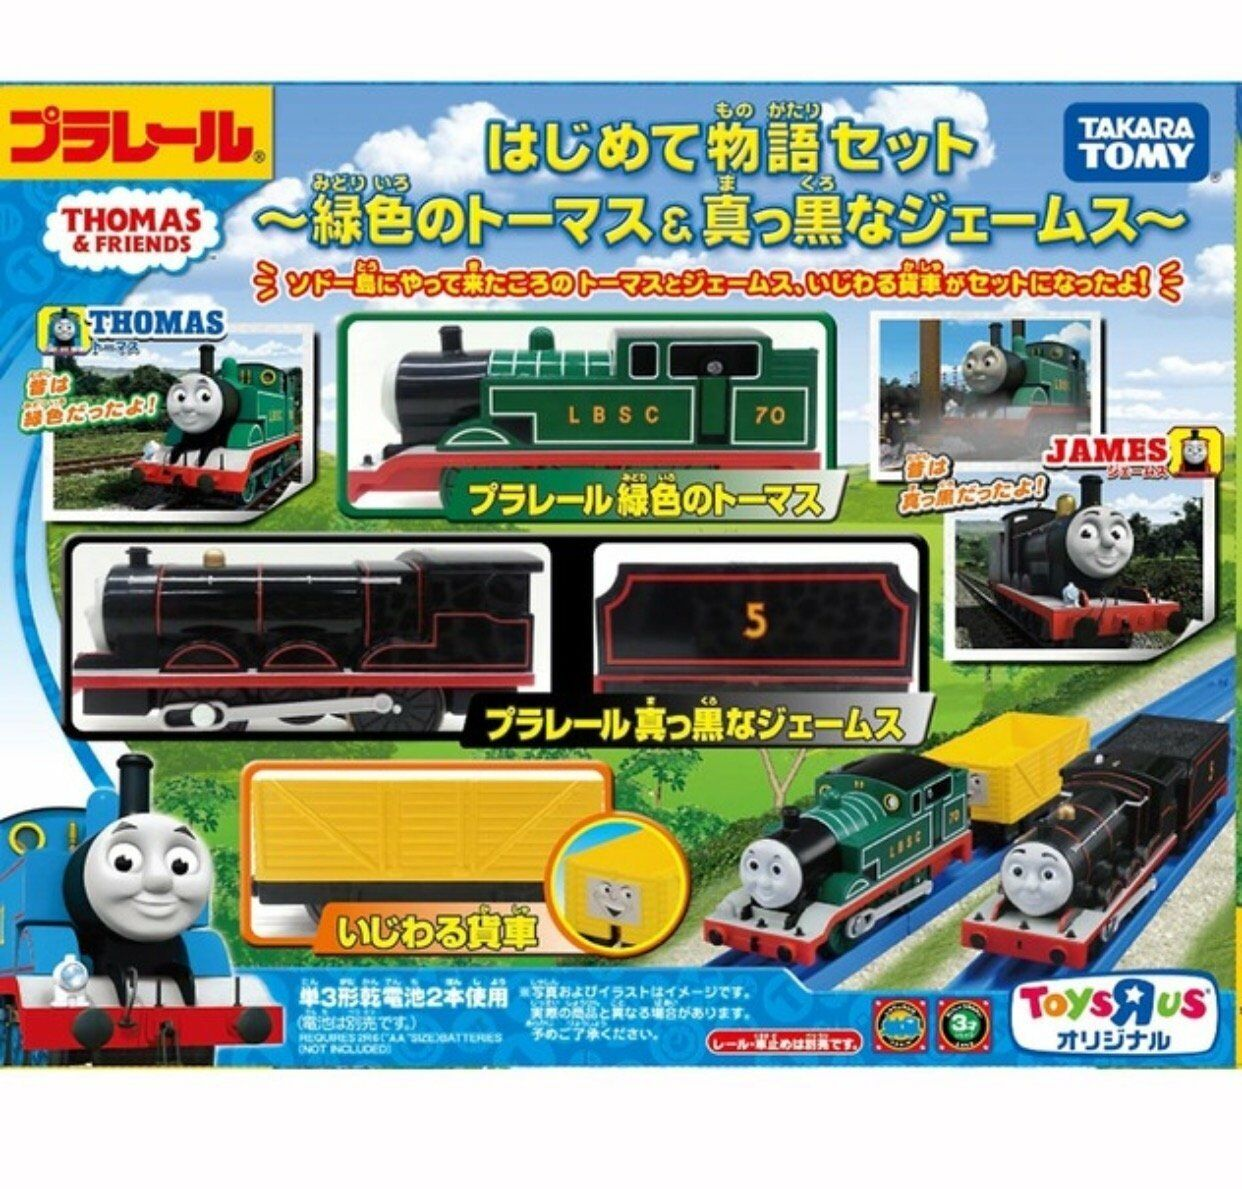 Toys 'R Us Limited Plarail Midori' s Thomas & James Just the First Time Story